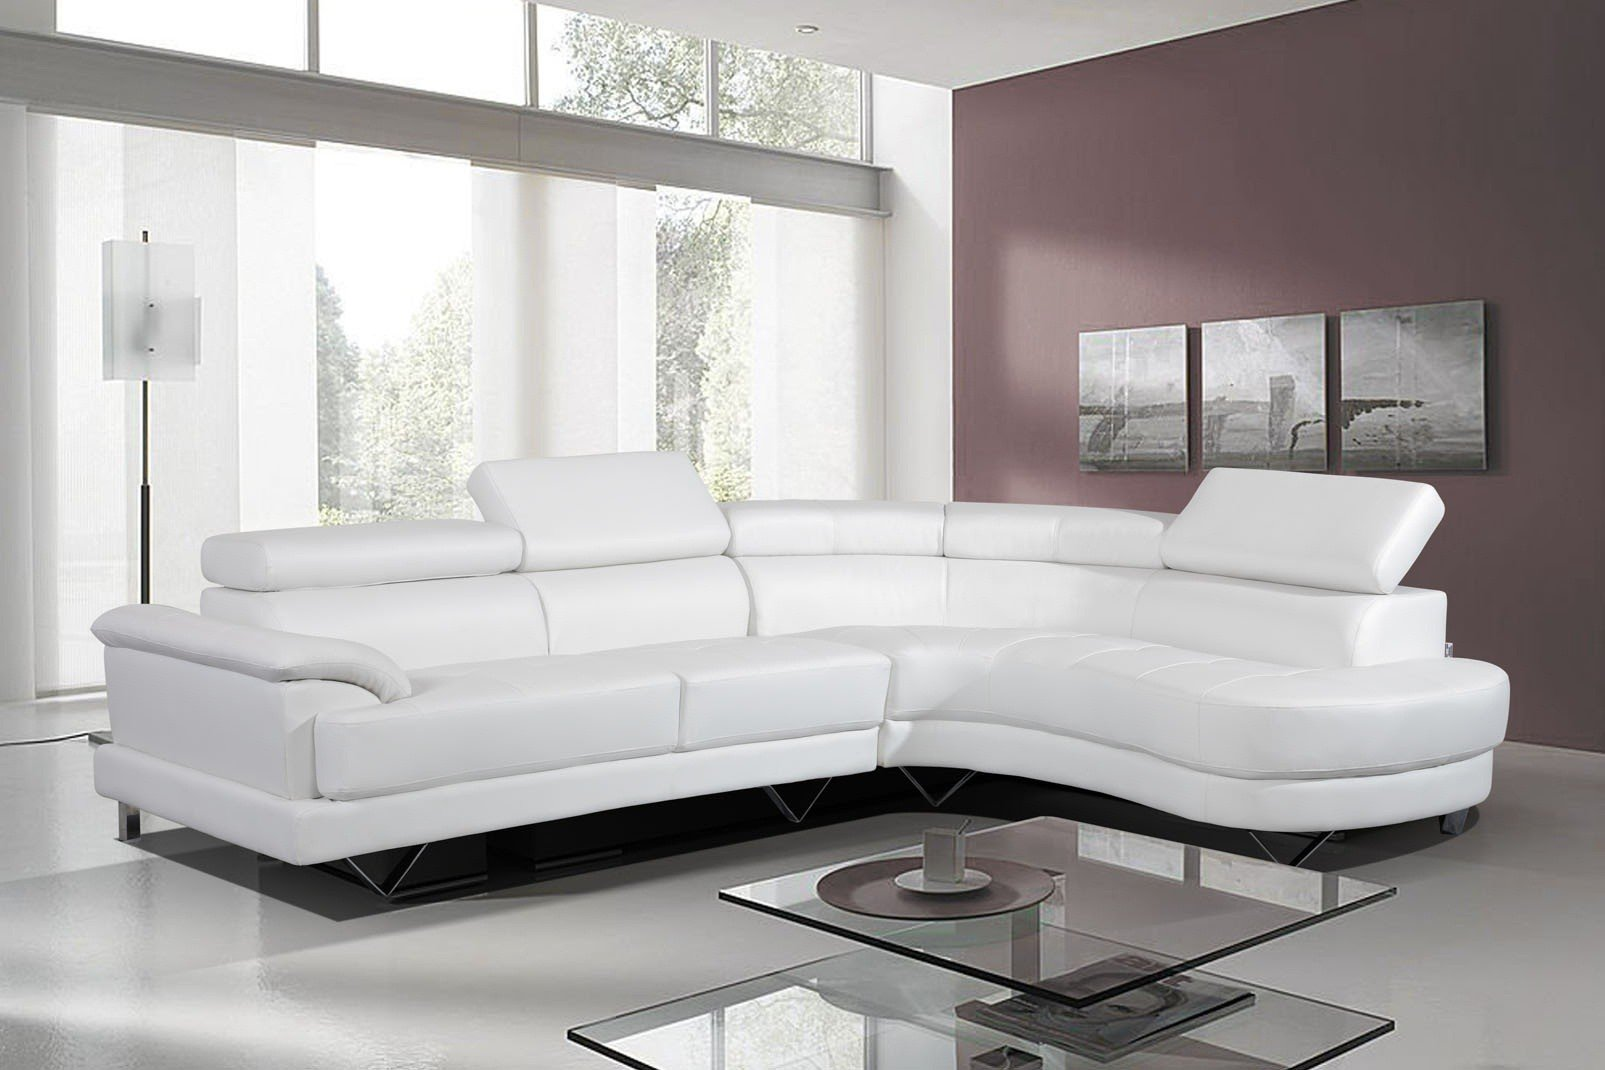 Stunning Leather Corner Sofa White ... white leather corner sofa